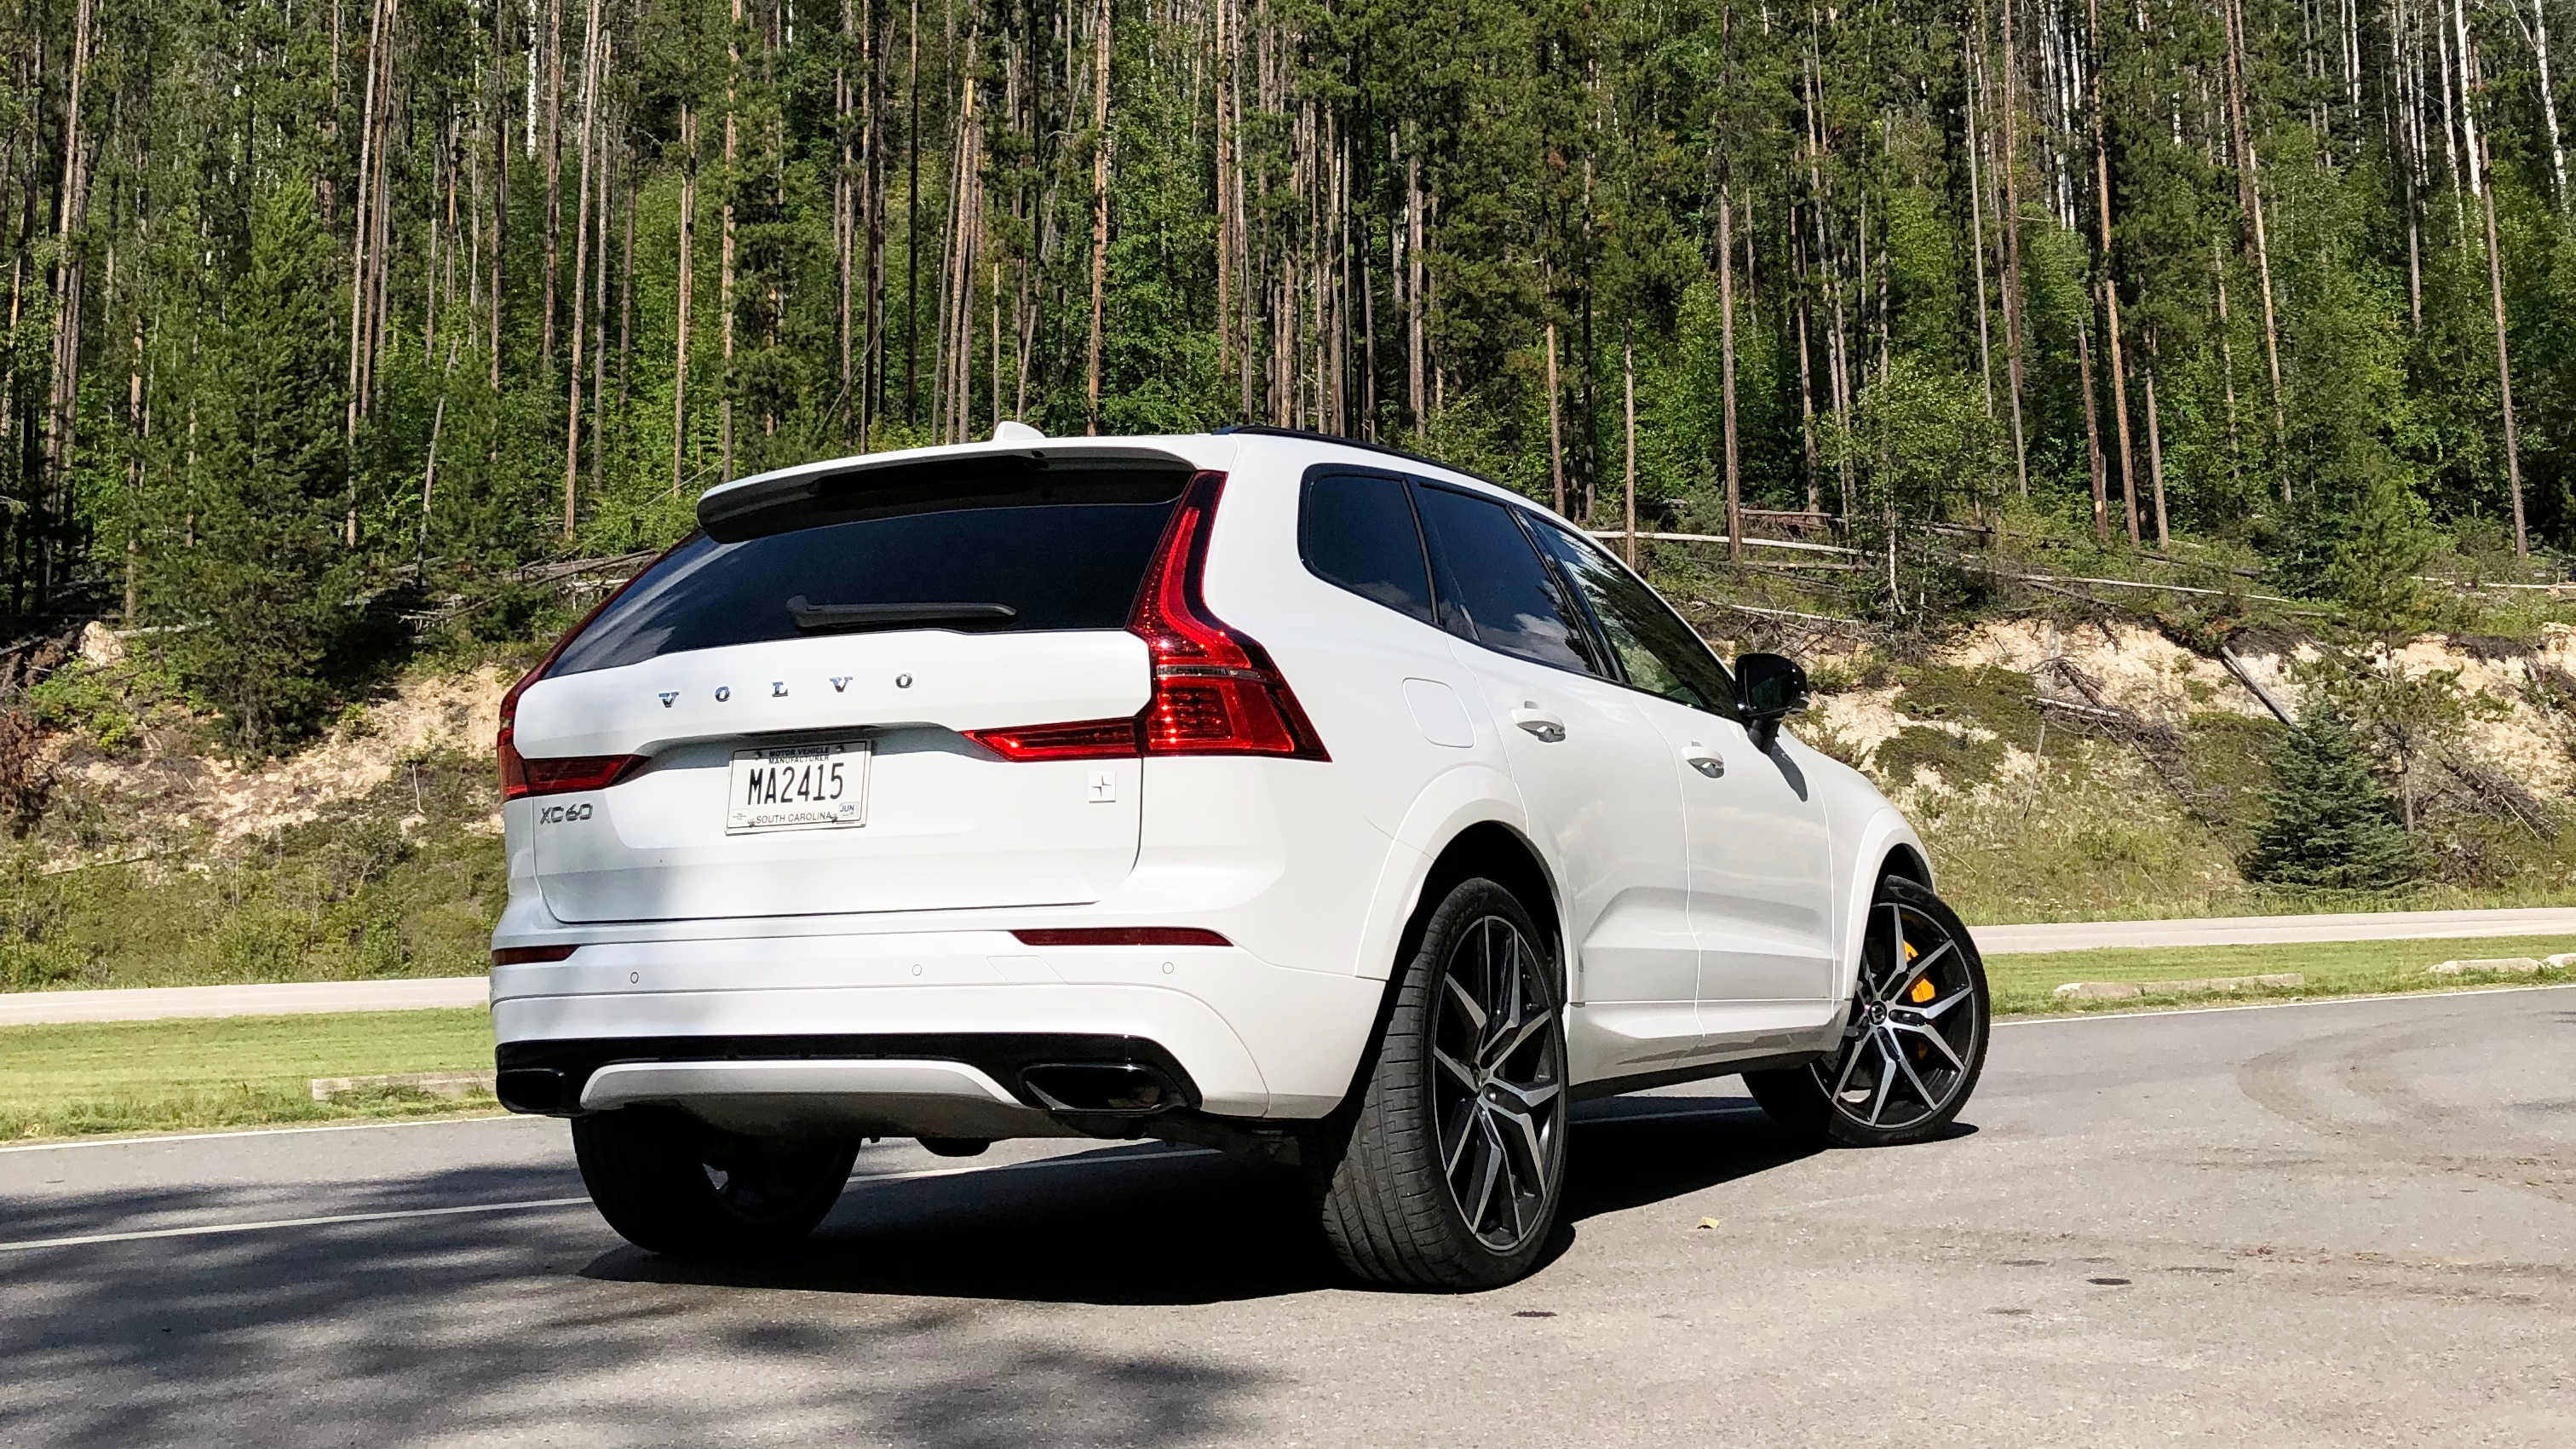 2020 Volvo Xc60 Polestar First Drive Review The Best Xc60